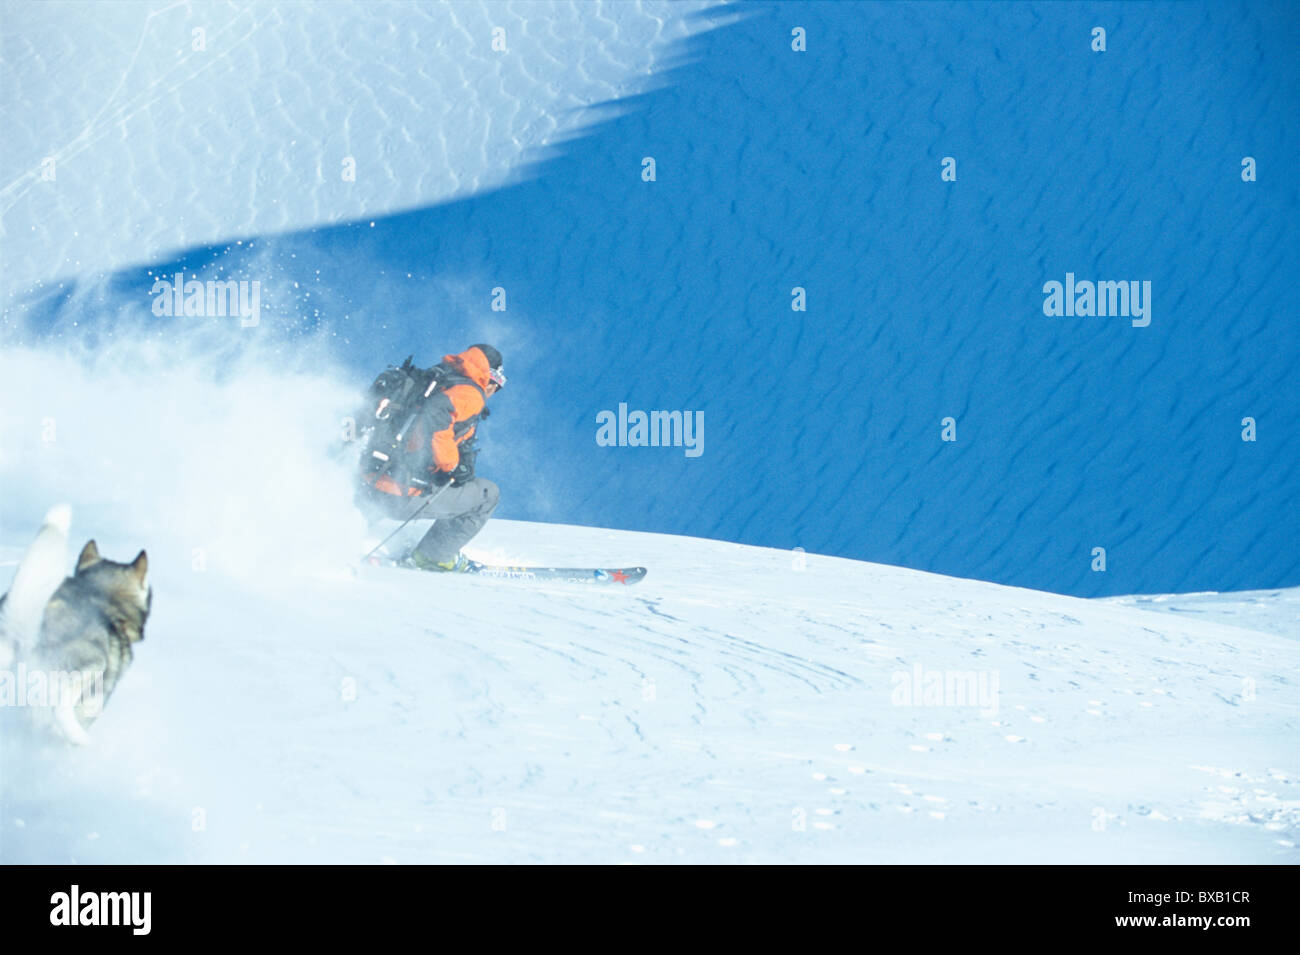 Husky running down hill after skier - Stock Image